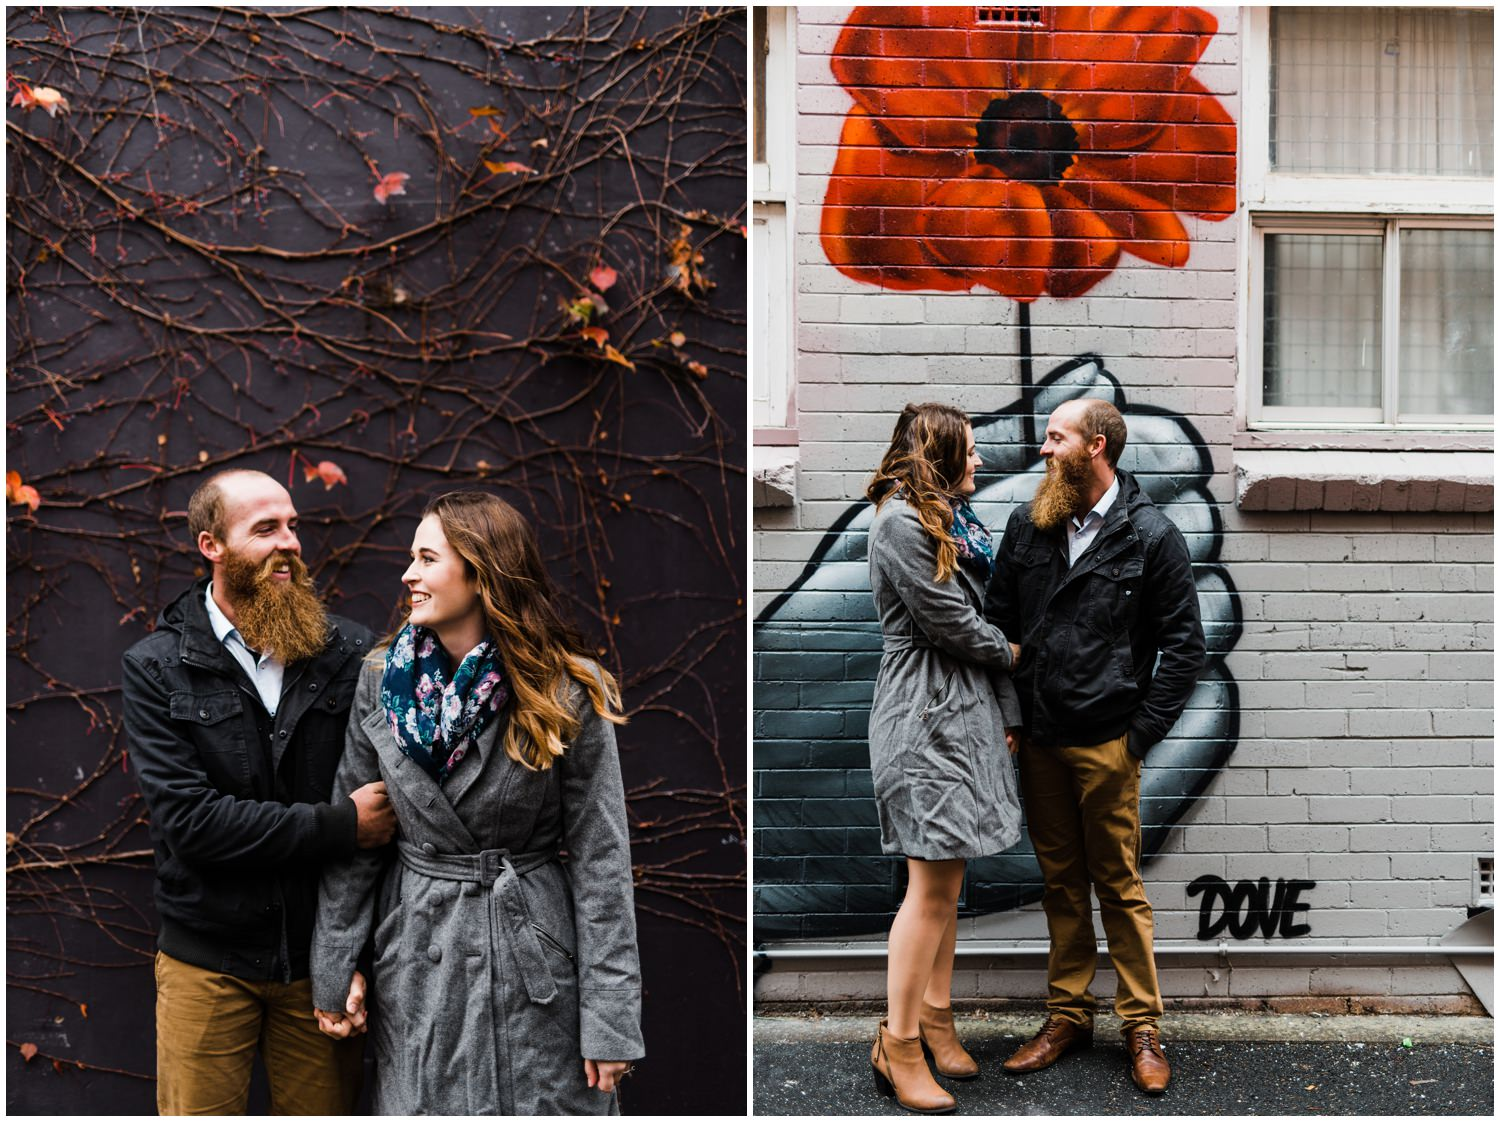 -toowoomba-engagement-shoot-first-coat-street-art1.jpg